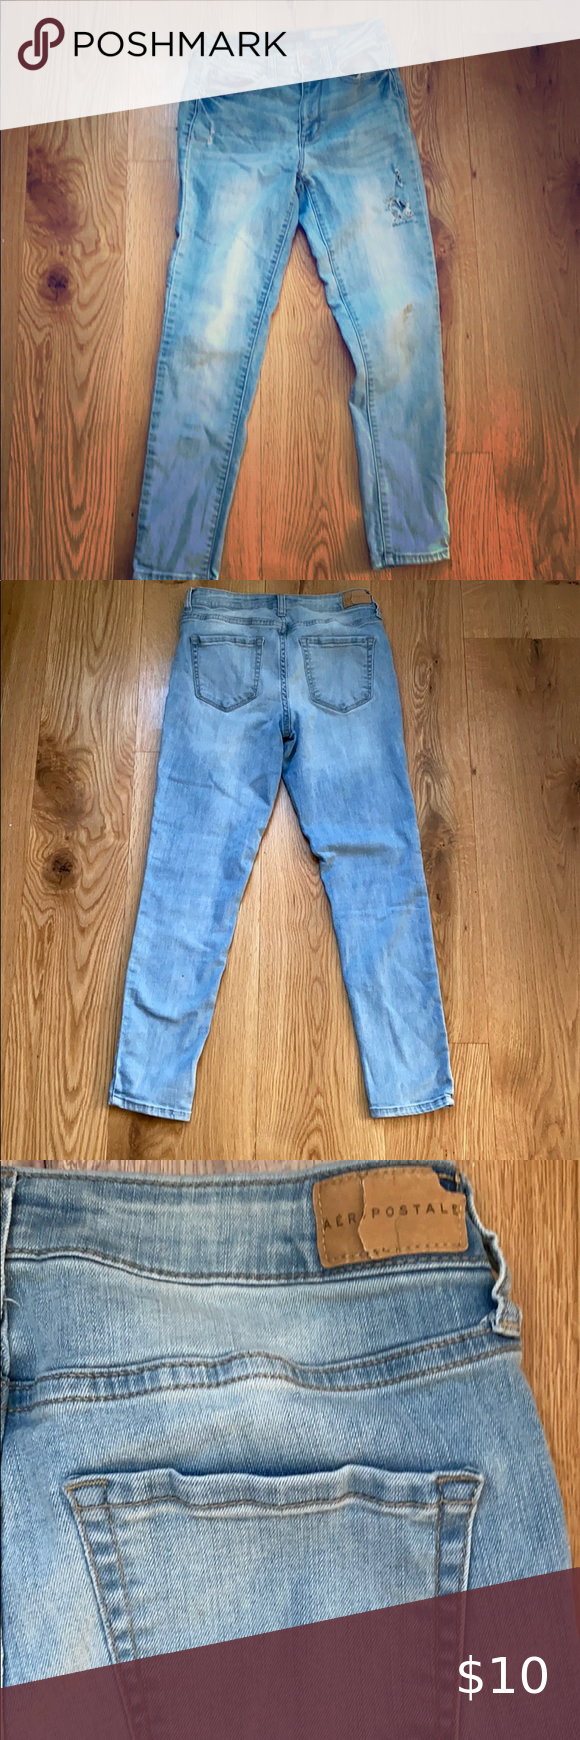 1607444ad62beb5f9bdcc0db7ffcd405 - How To Get Dirt Stains Out Of Light Jeans